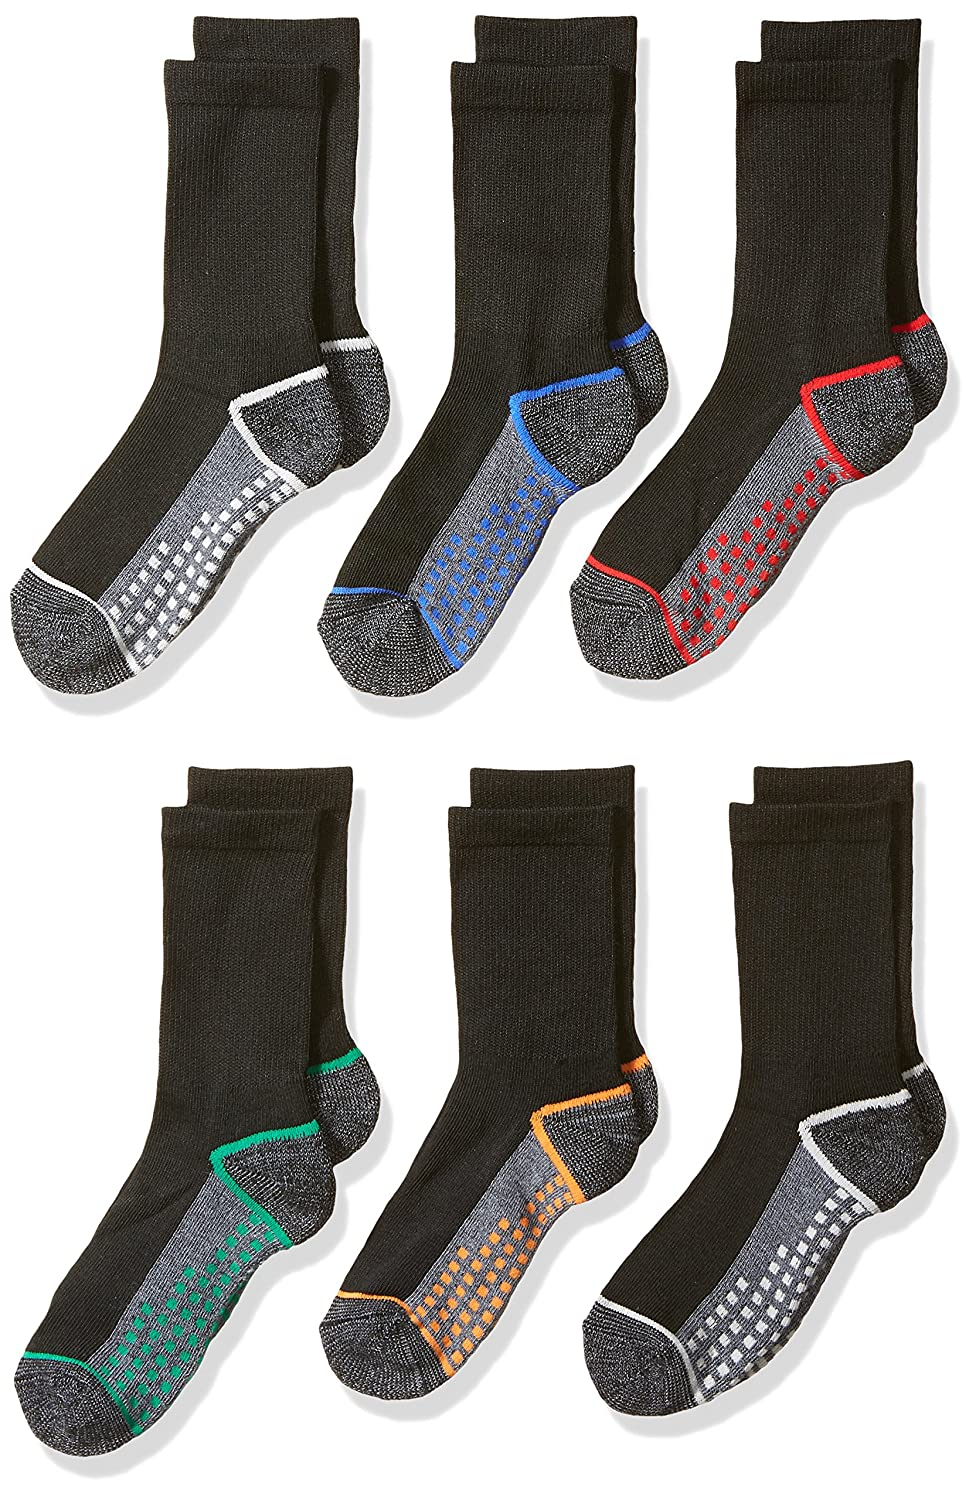 Fruit of the Loom Big Boy's 6 Pack Dotted Crew Socks Black/ Grey Shoe Size 9 to 2.5 C8603B6-C